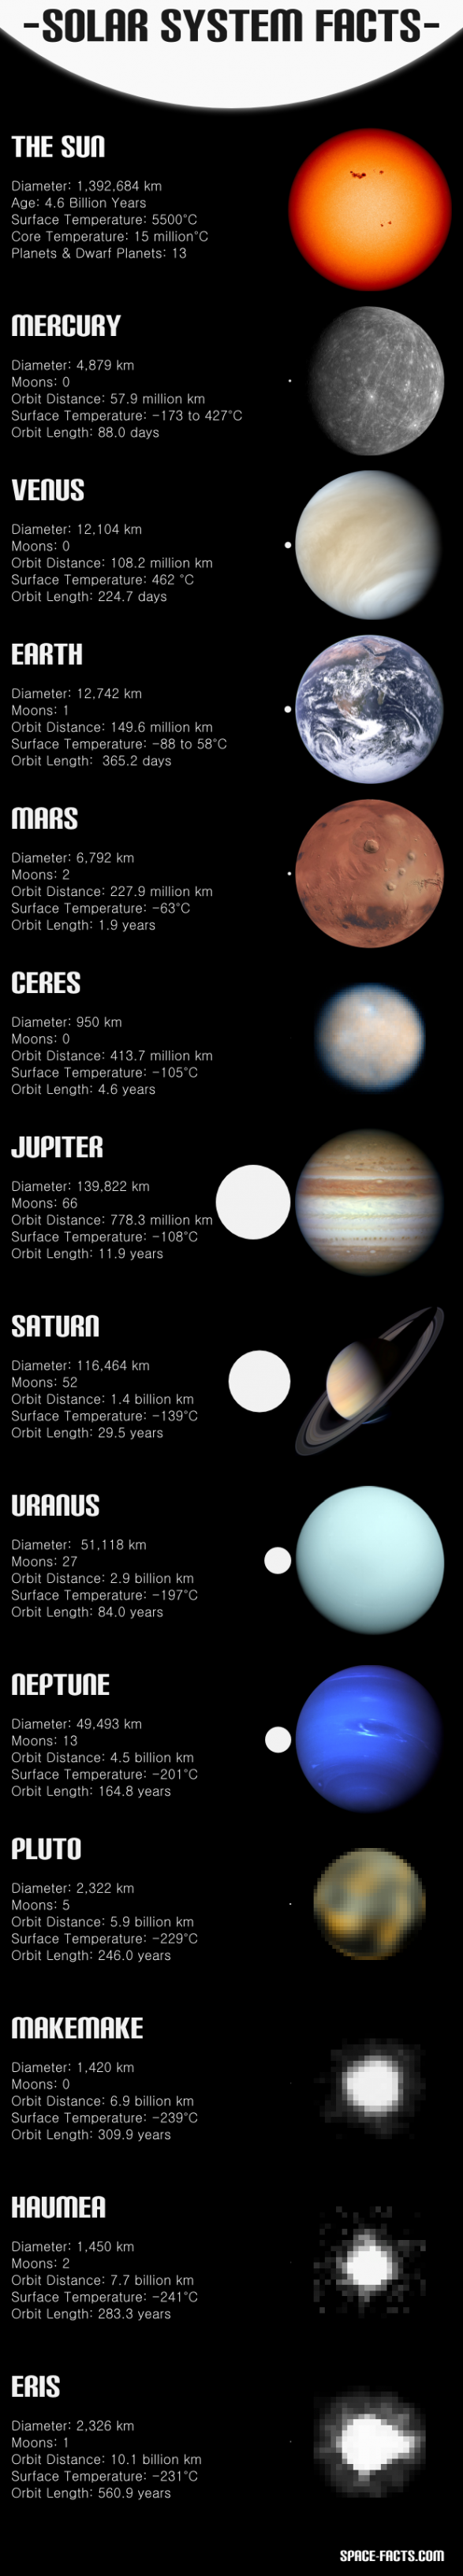 Things About the Solar System (page 2) - Pics about space